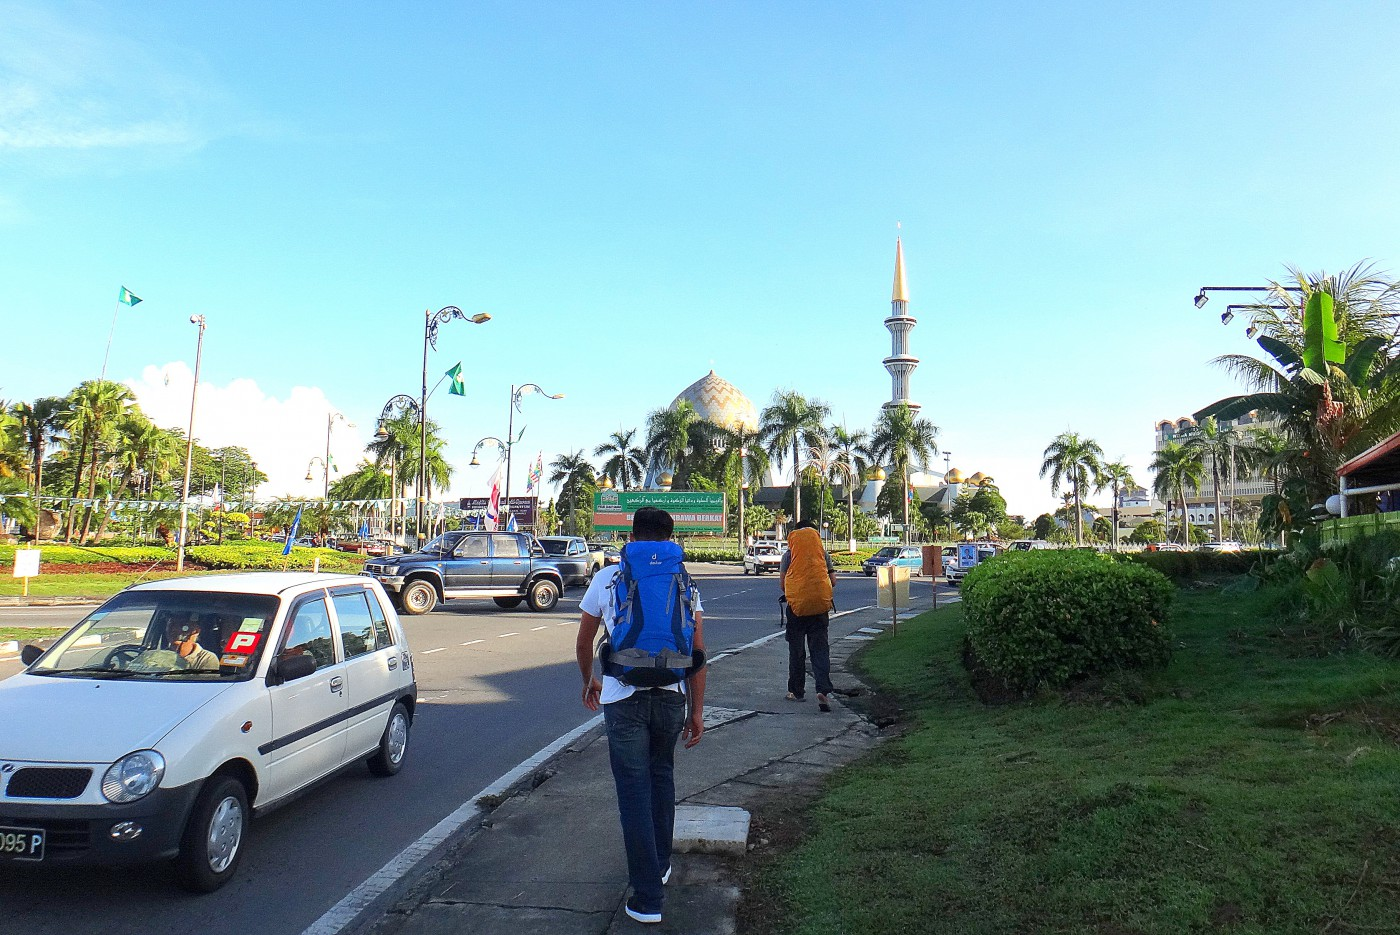 Backpacking Kota Kinabalu. State Mosque at the background.